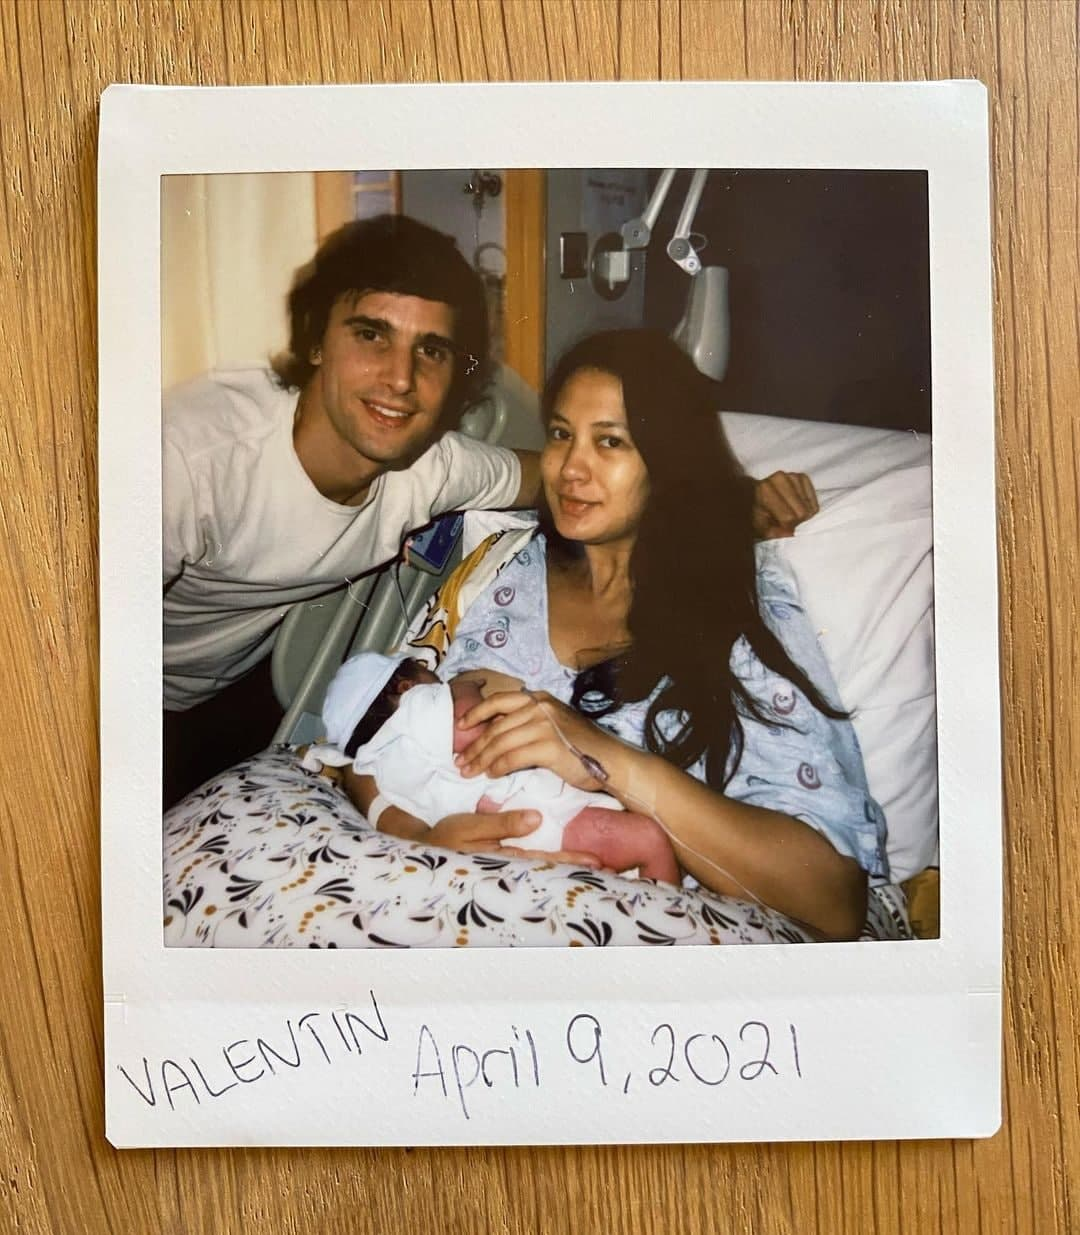 Adrien Semblat and Isabelle Daza with their newborn child